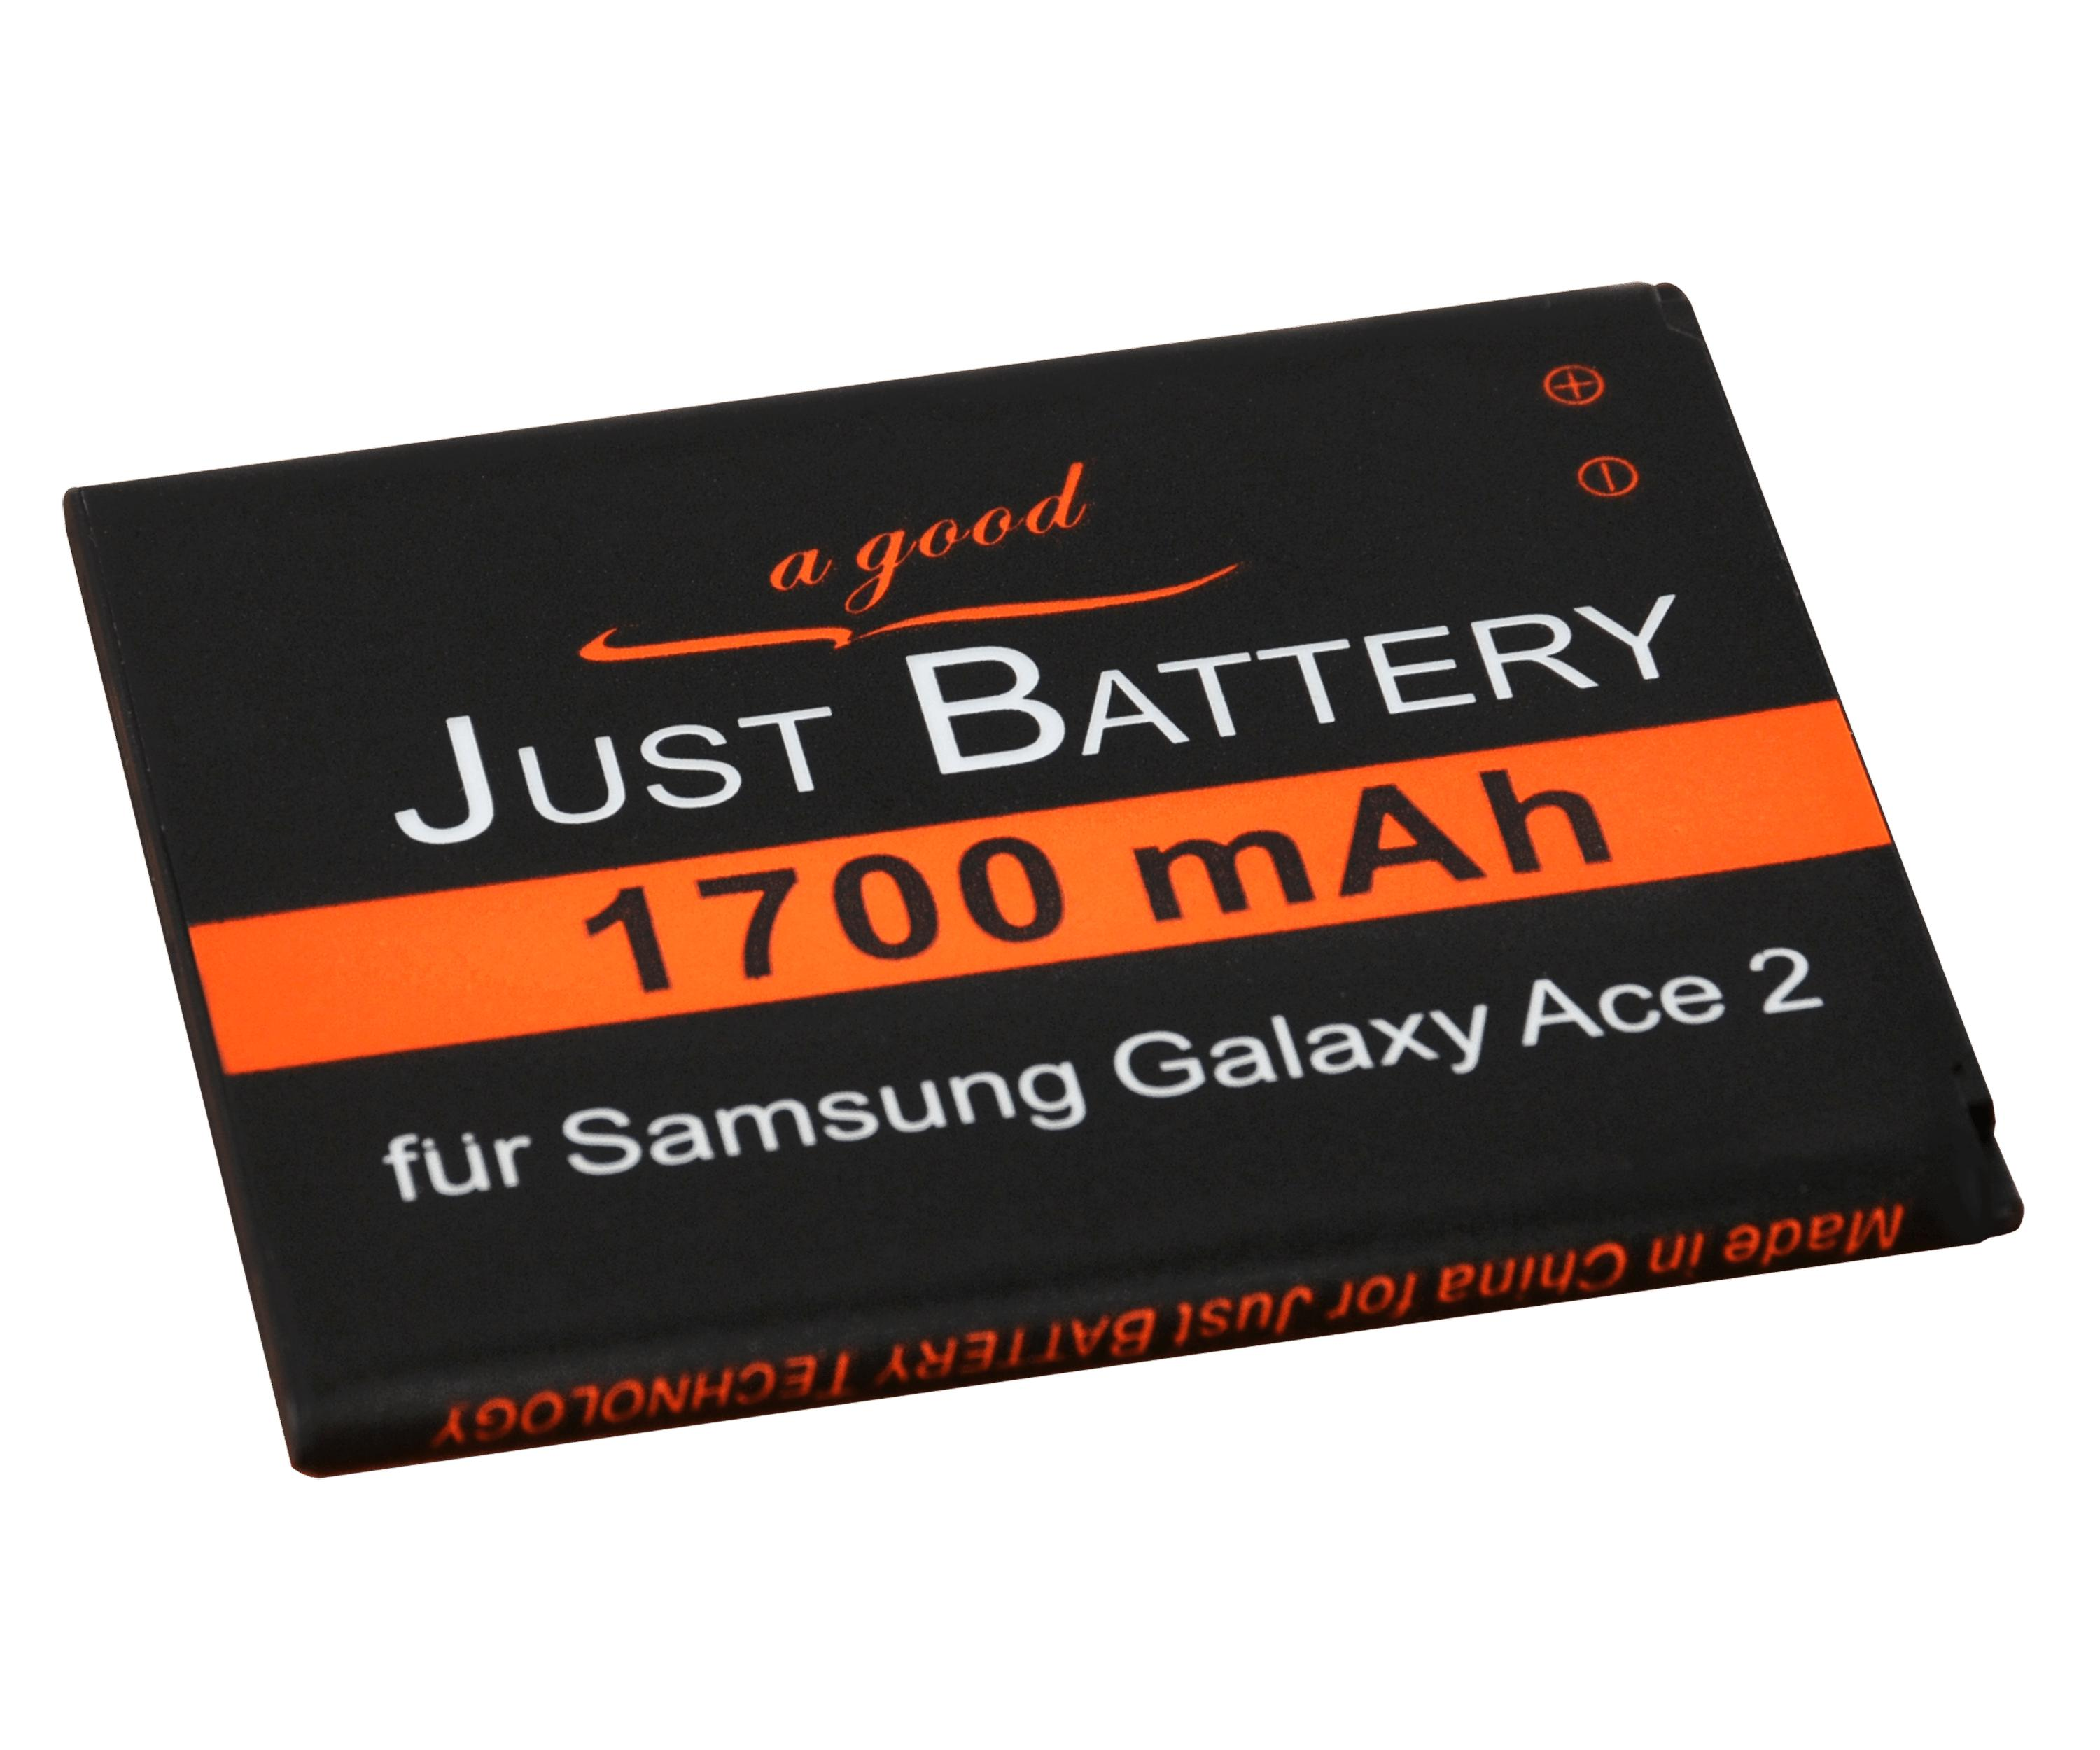 Battery for Samsung Galaxy S GT-s7562 duo